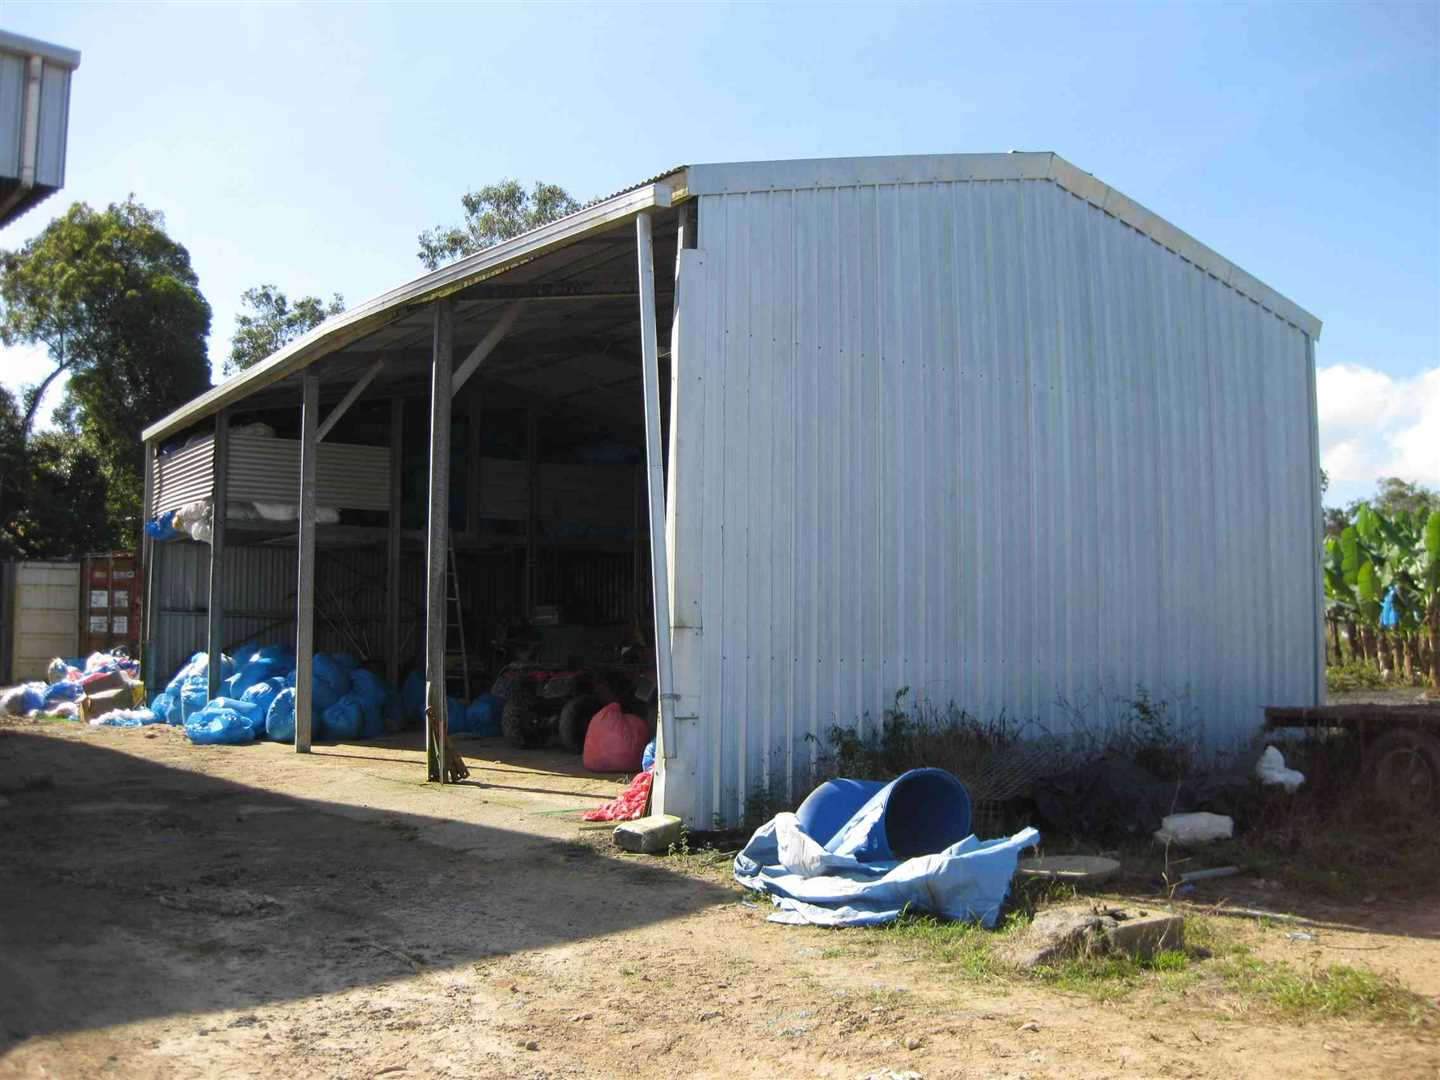 View of part of 4 bay shed with concrete floor and loft